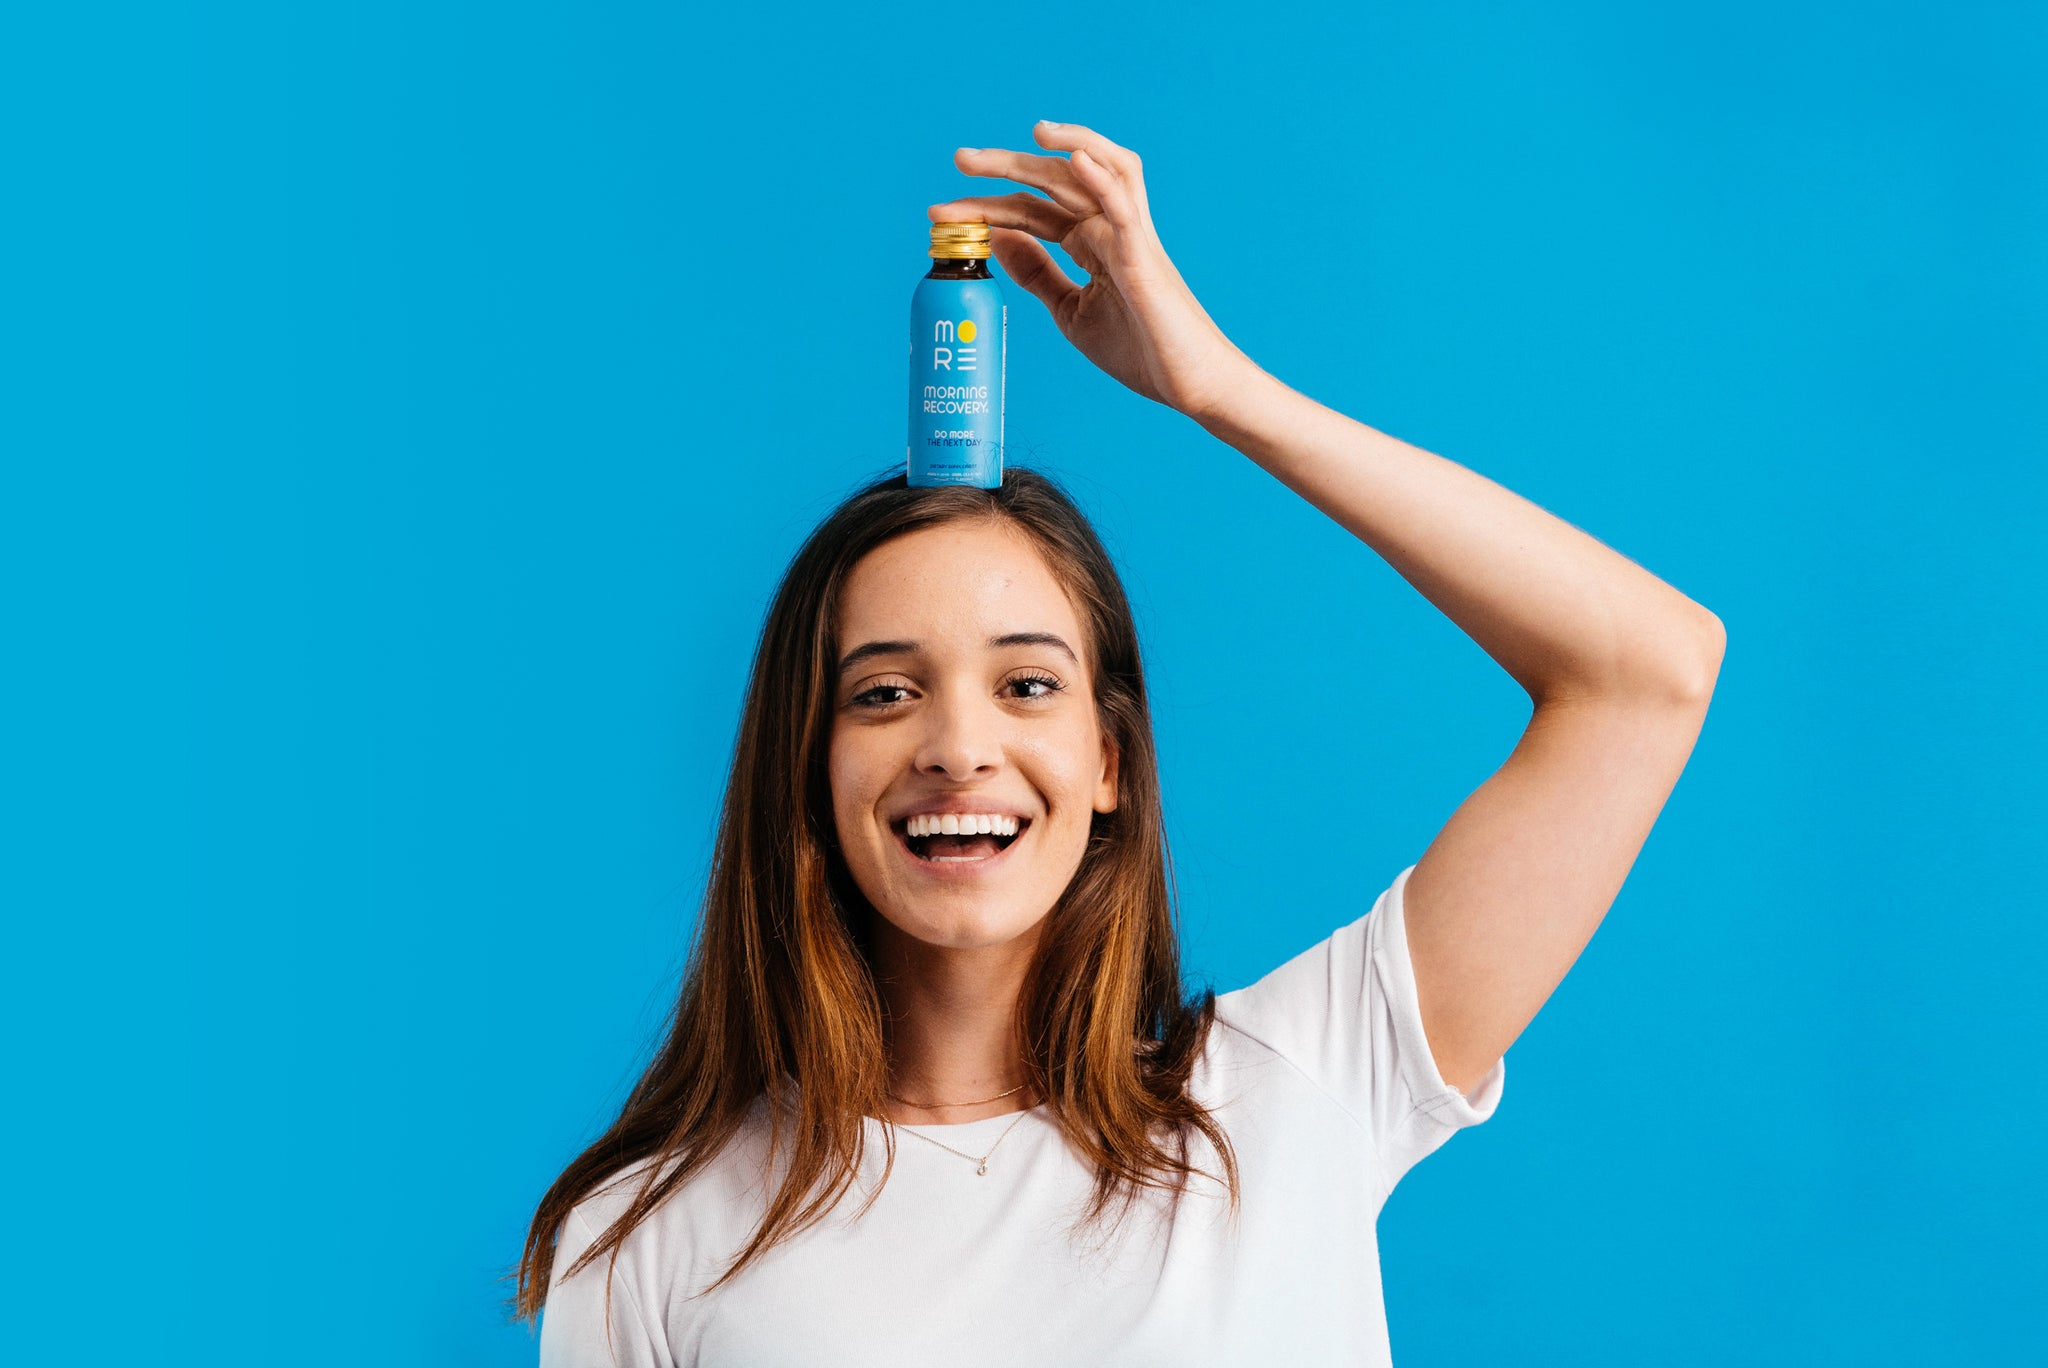 Why Millennials need this new blue drink